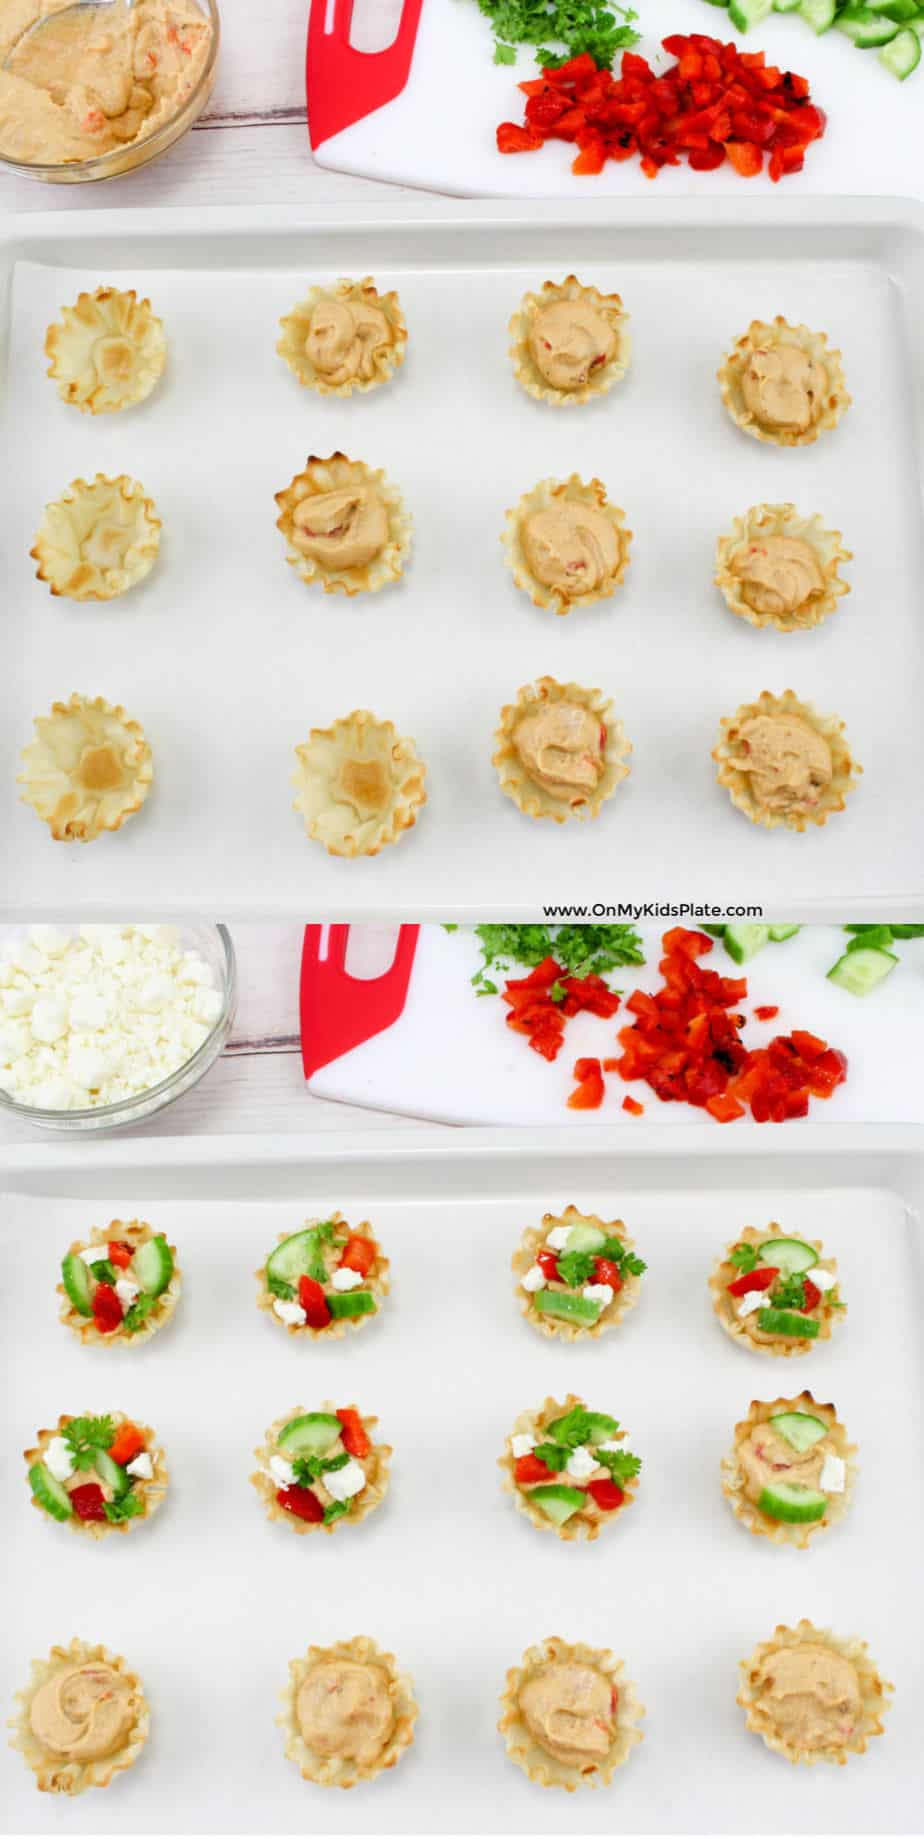 Phyllo cups being filled with hummus, then topped with chopped red pepper, cucumber and parsley from a cutting board and feta cheese from a bowl.